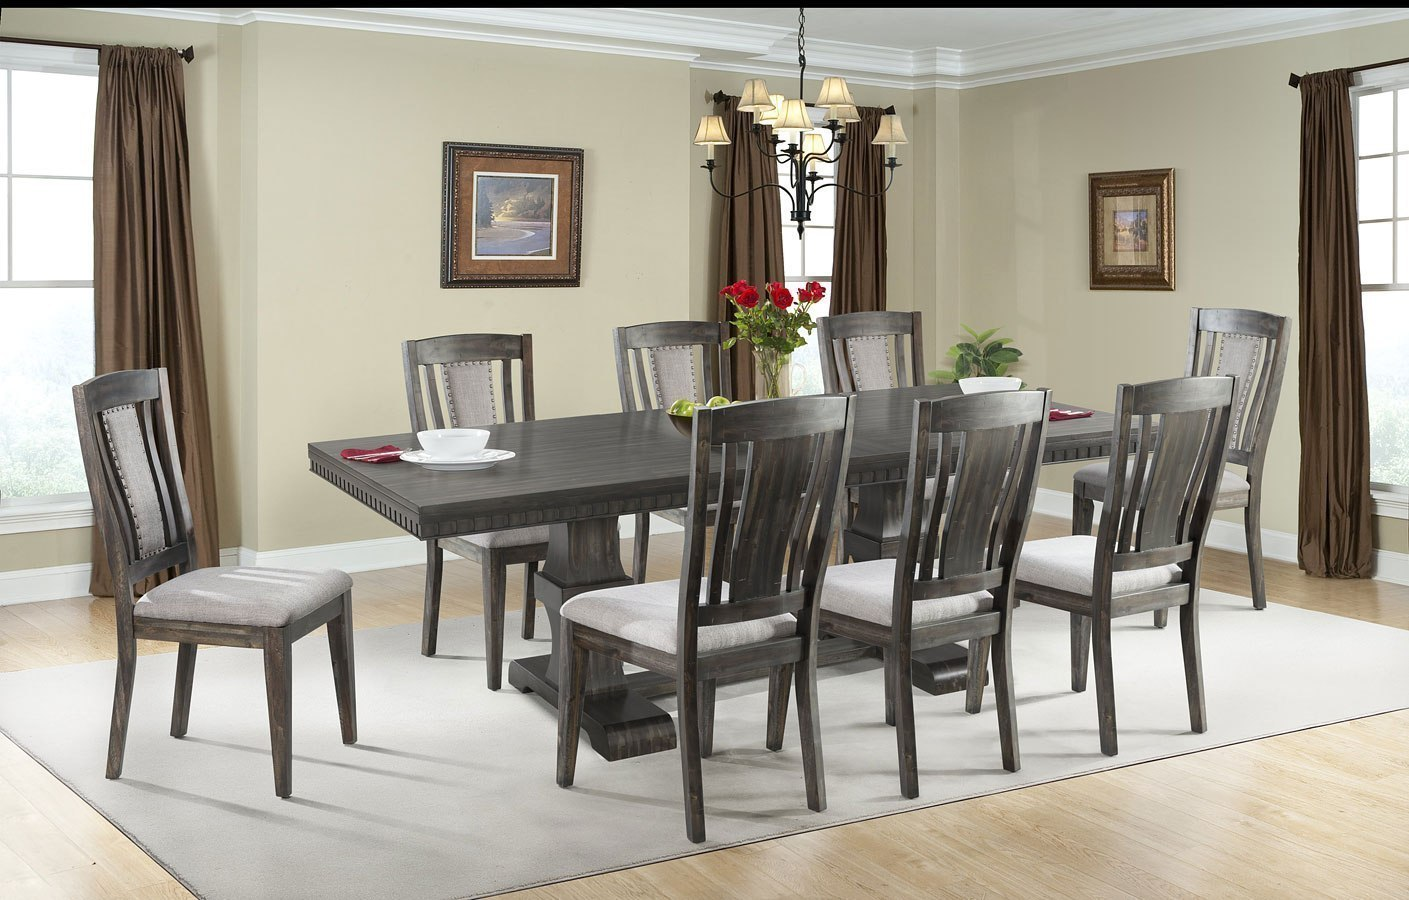 morrison dining room set elements furniture furniture cart. Black Bedroom Furniture Sets. Home Design Ideas